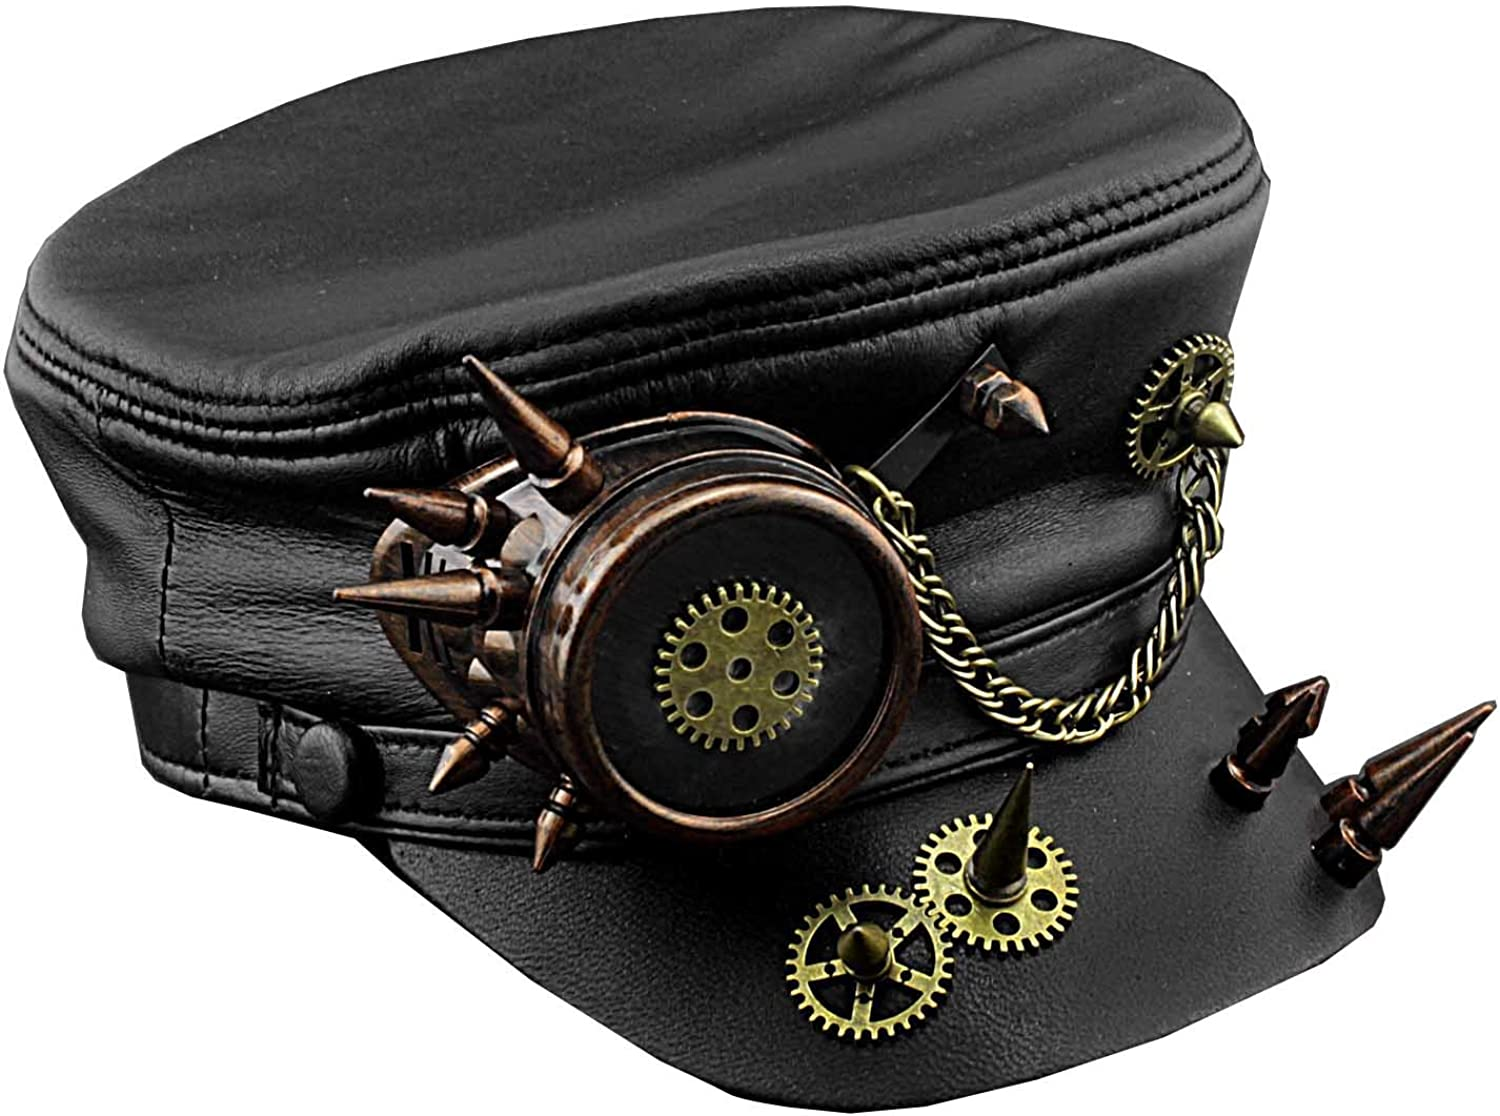 Men/'s Steampunk Gear Goggle Black Hat Vintage Real Leather Cap